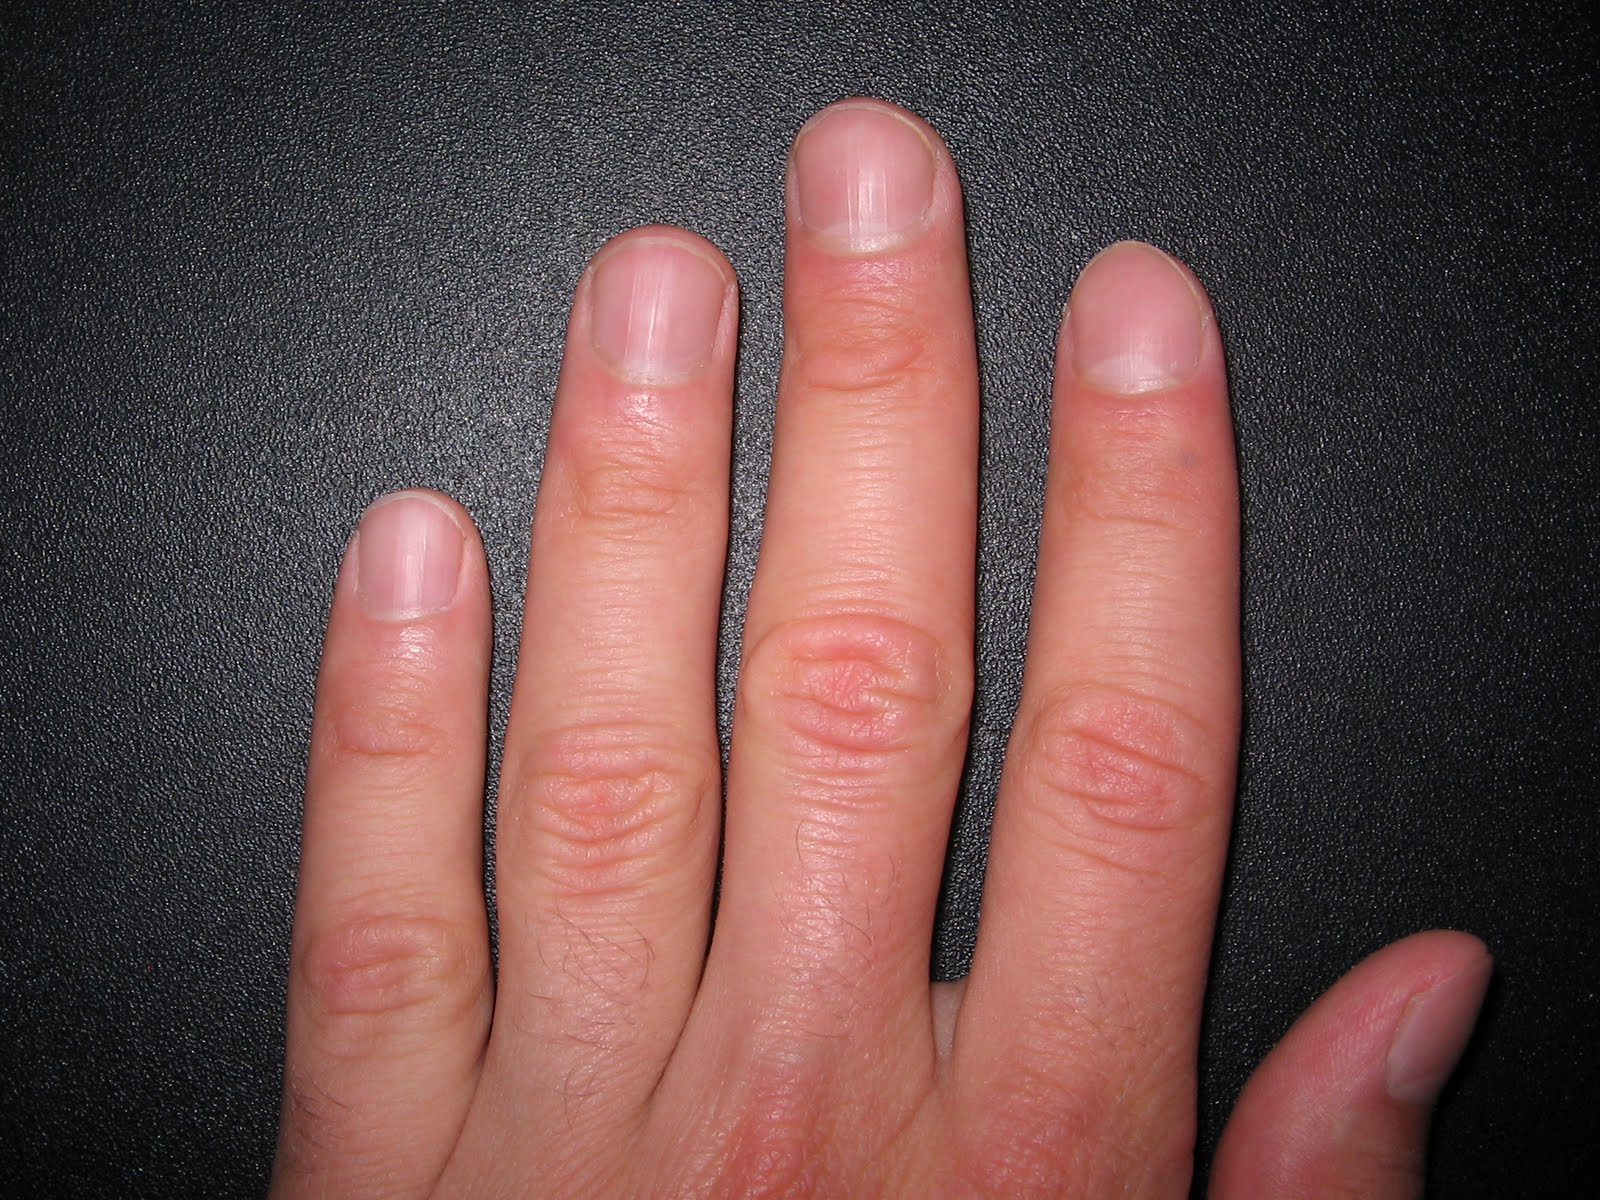 My Question Is About Fingernails And The Piano I Know That Some Teachers Insist On Very Short All Their Students